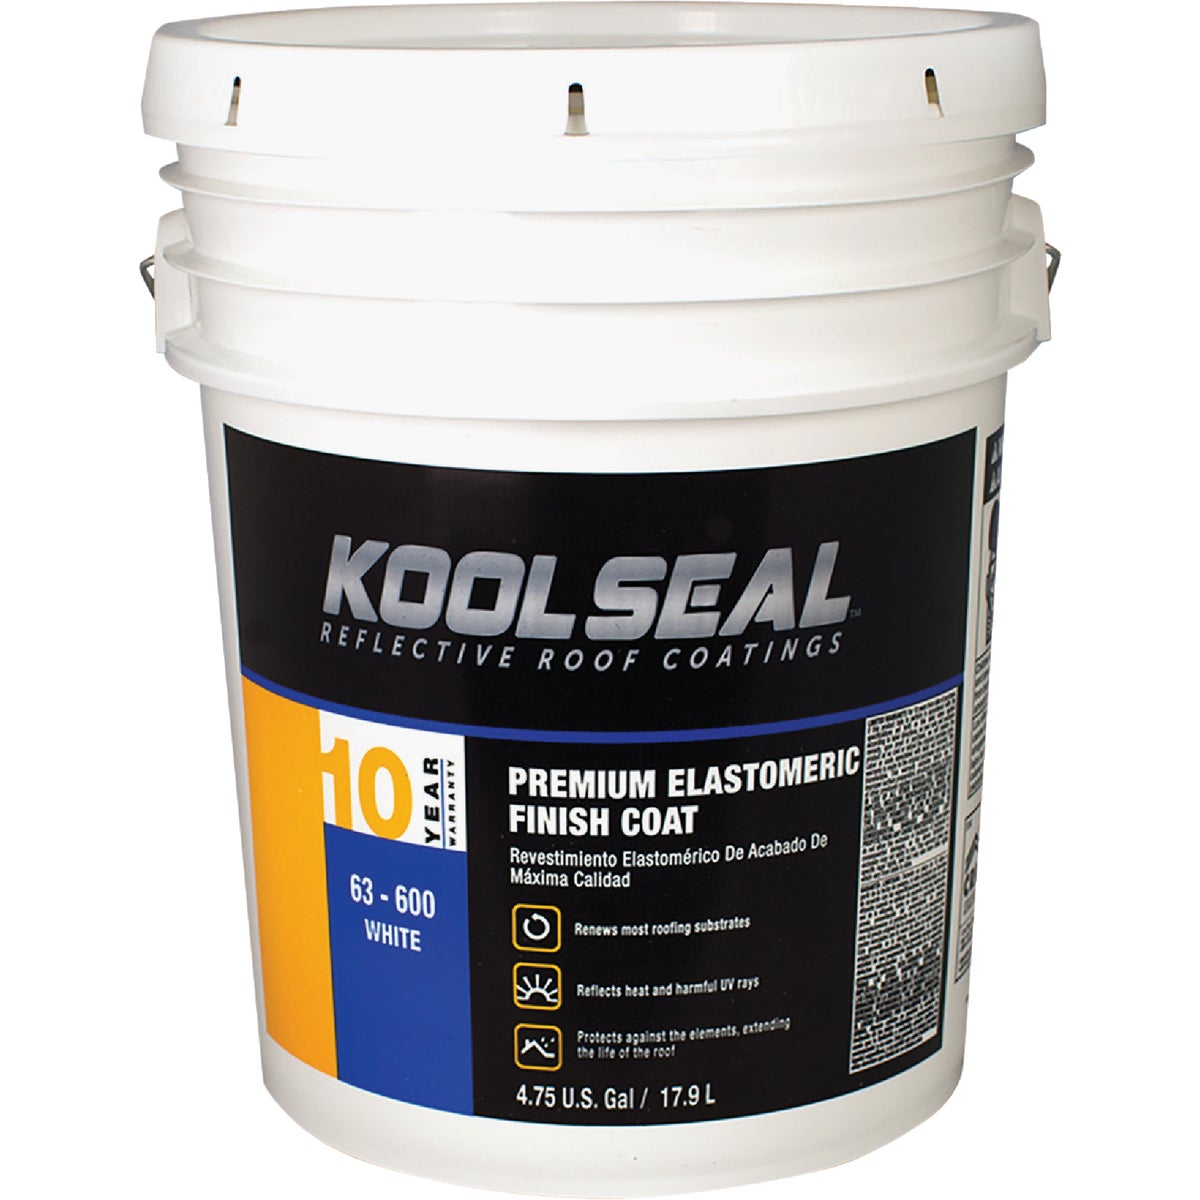 5GAL ELASTMRC RF COATING - 63-600-5 by Kool Seal